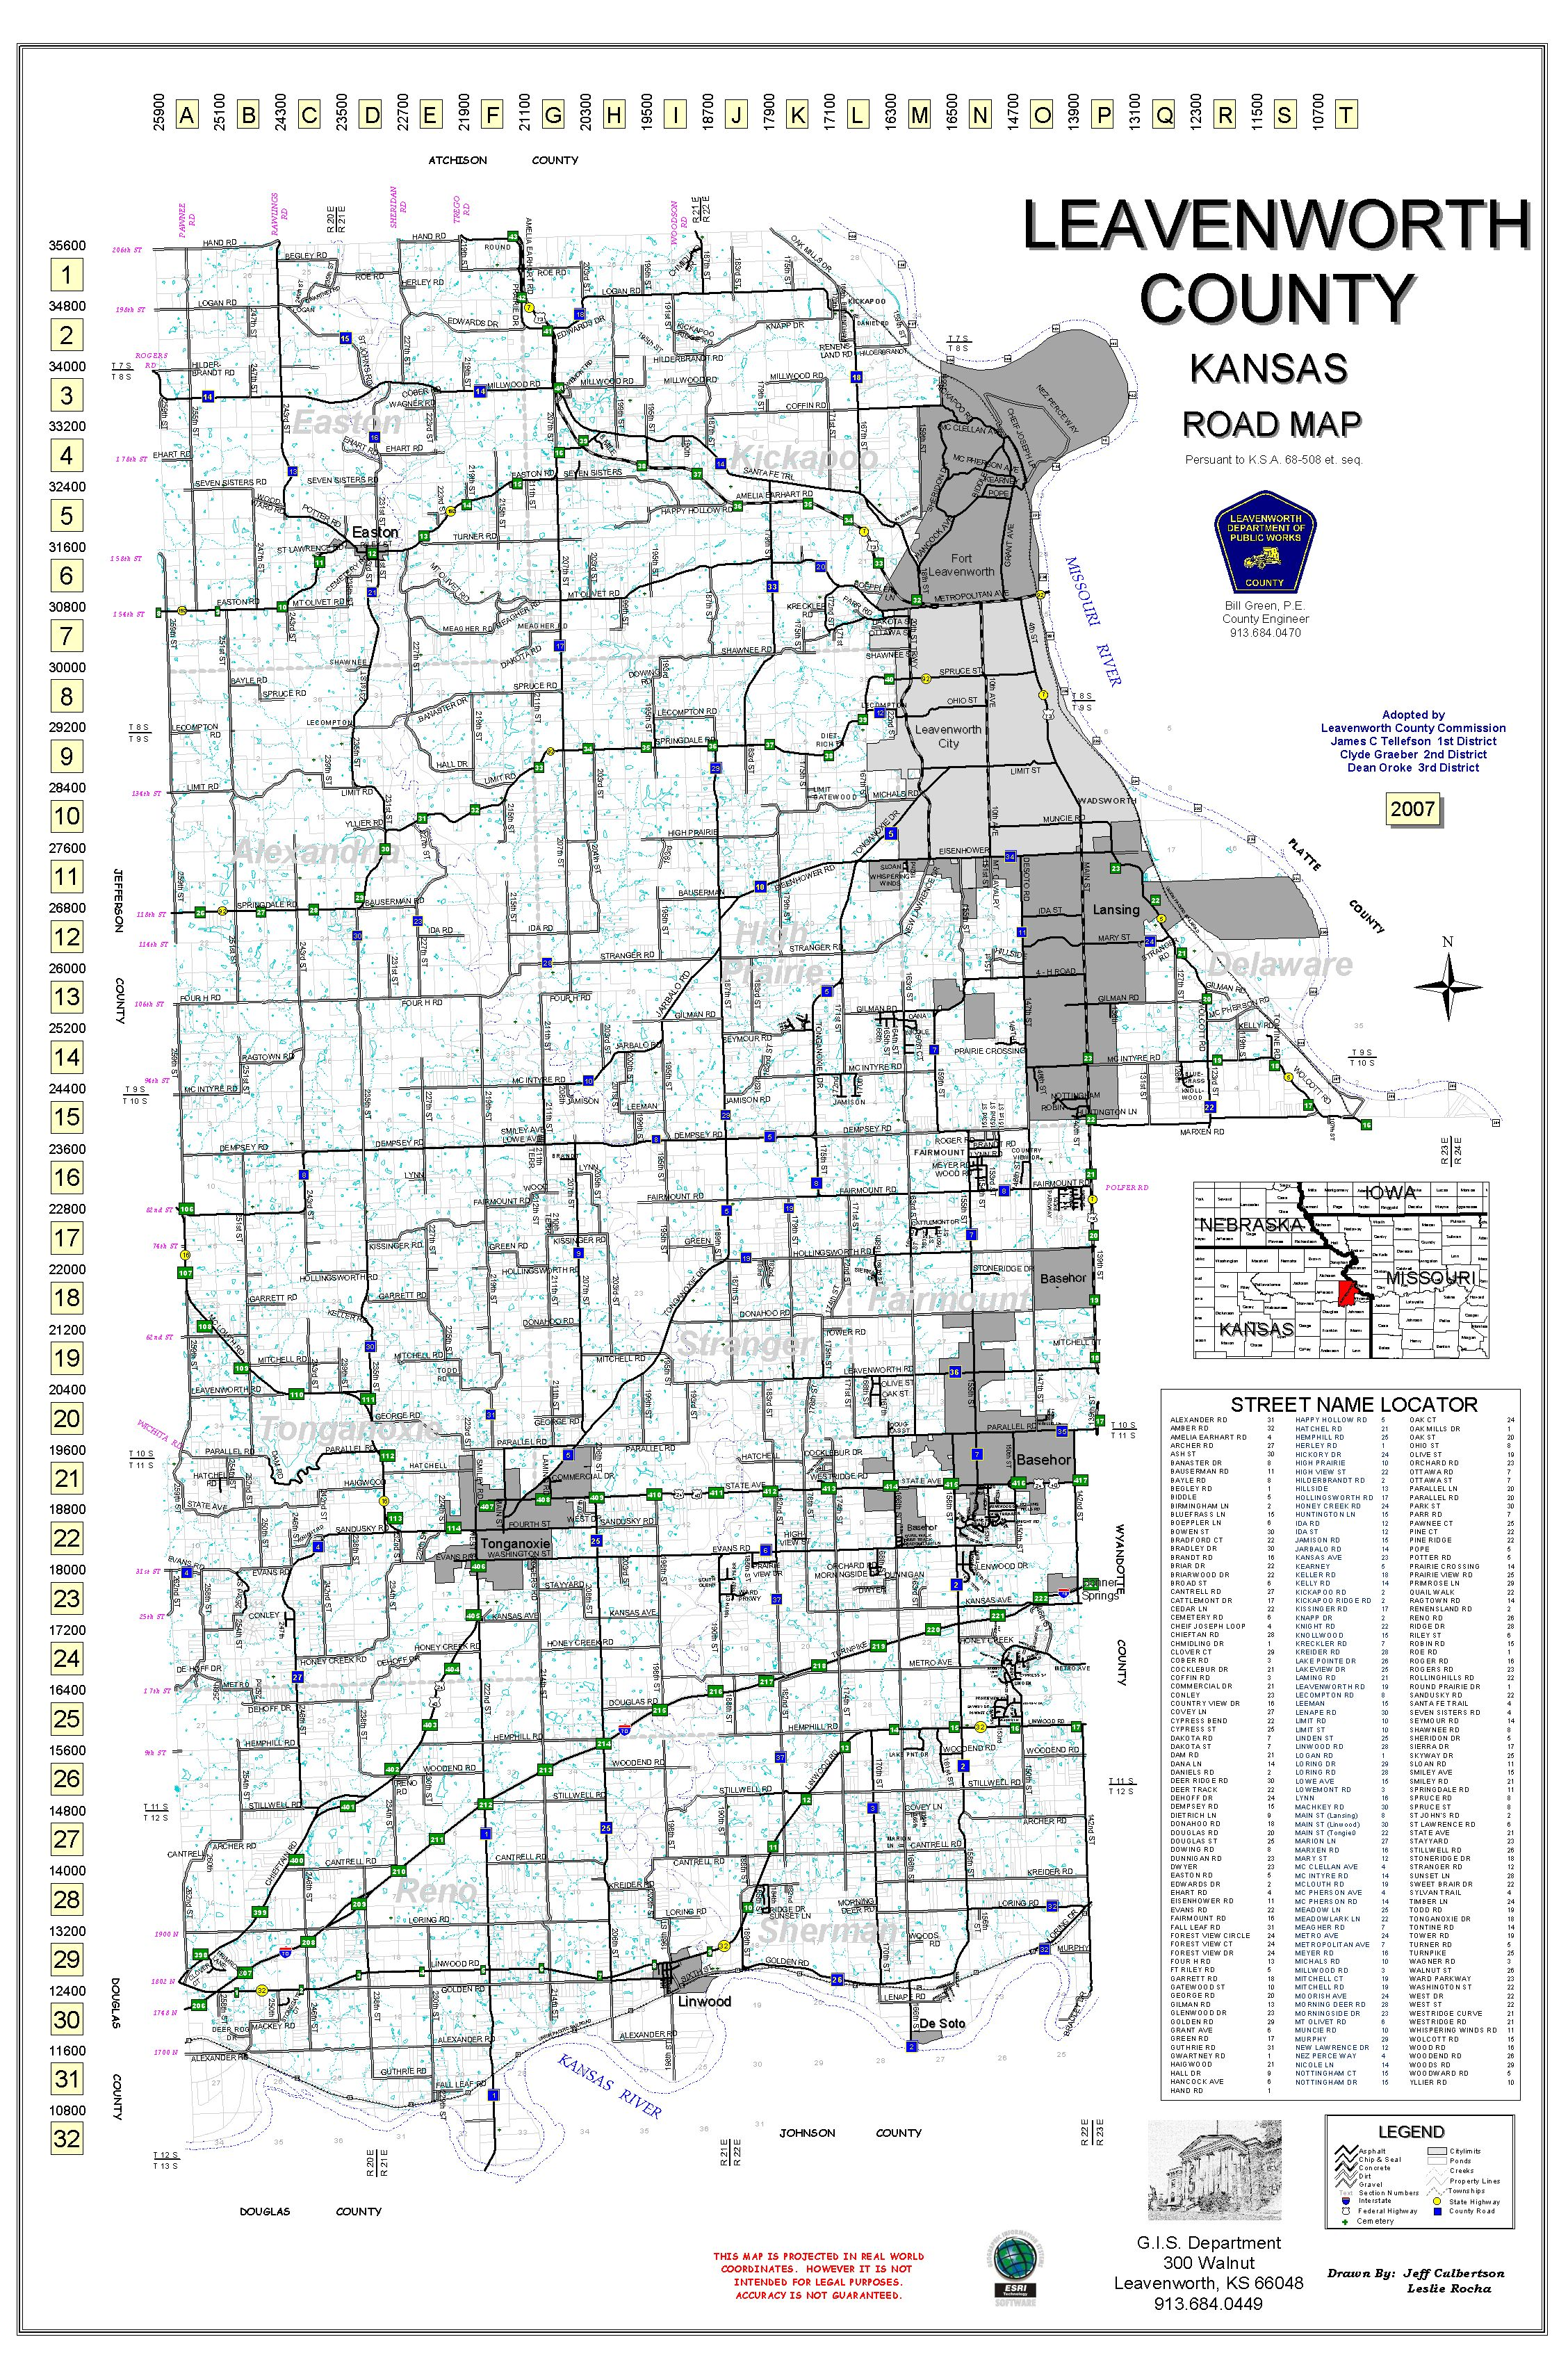 Kansas County Road Maps on highway 666 new mexico maps, kansas hwy maps, motorcycle road trip maps, kansas roadway maps, kansas street maps, kansas highway atlas, kansas county map printable, kansas county atlases, kansas road map with counties, kansas state road maps,